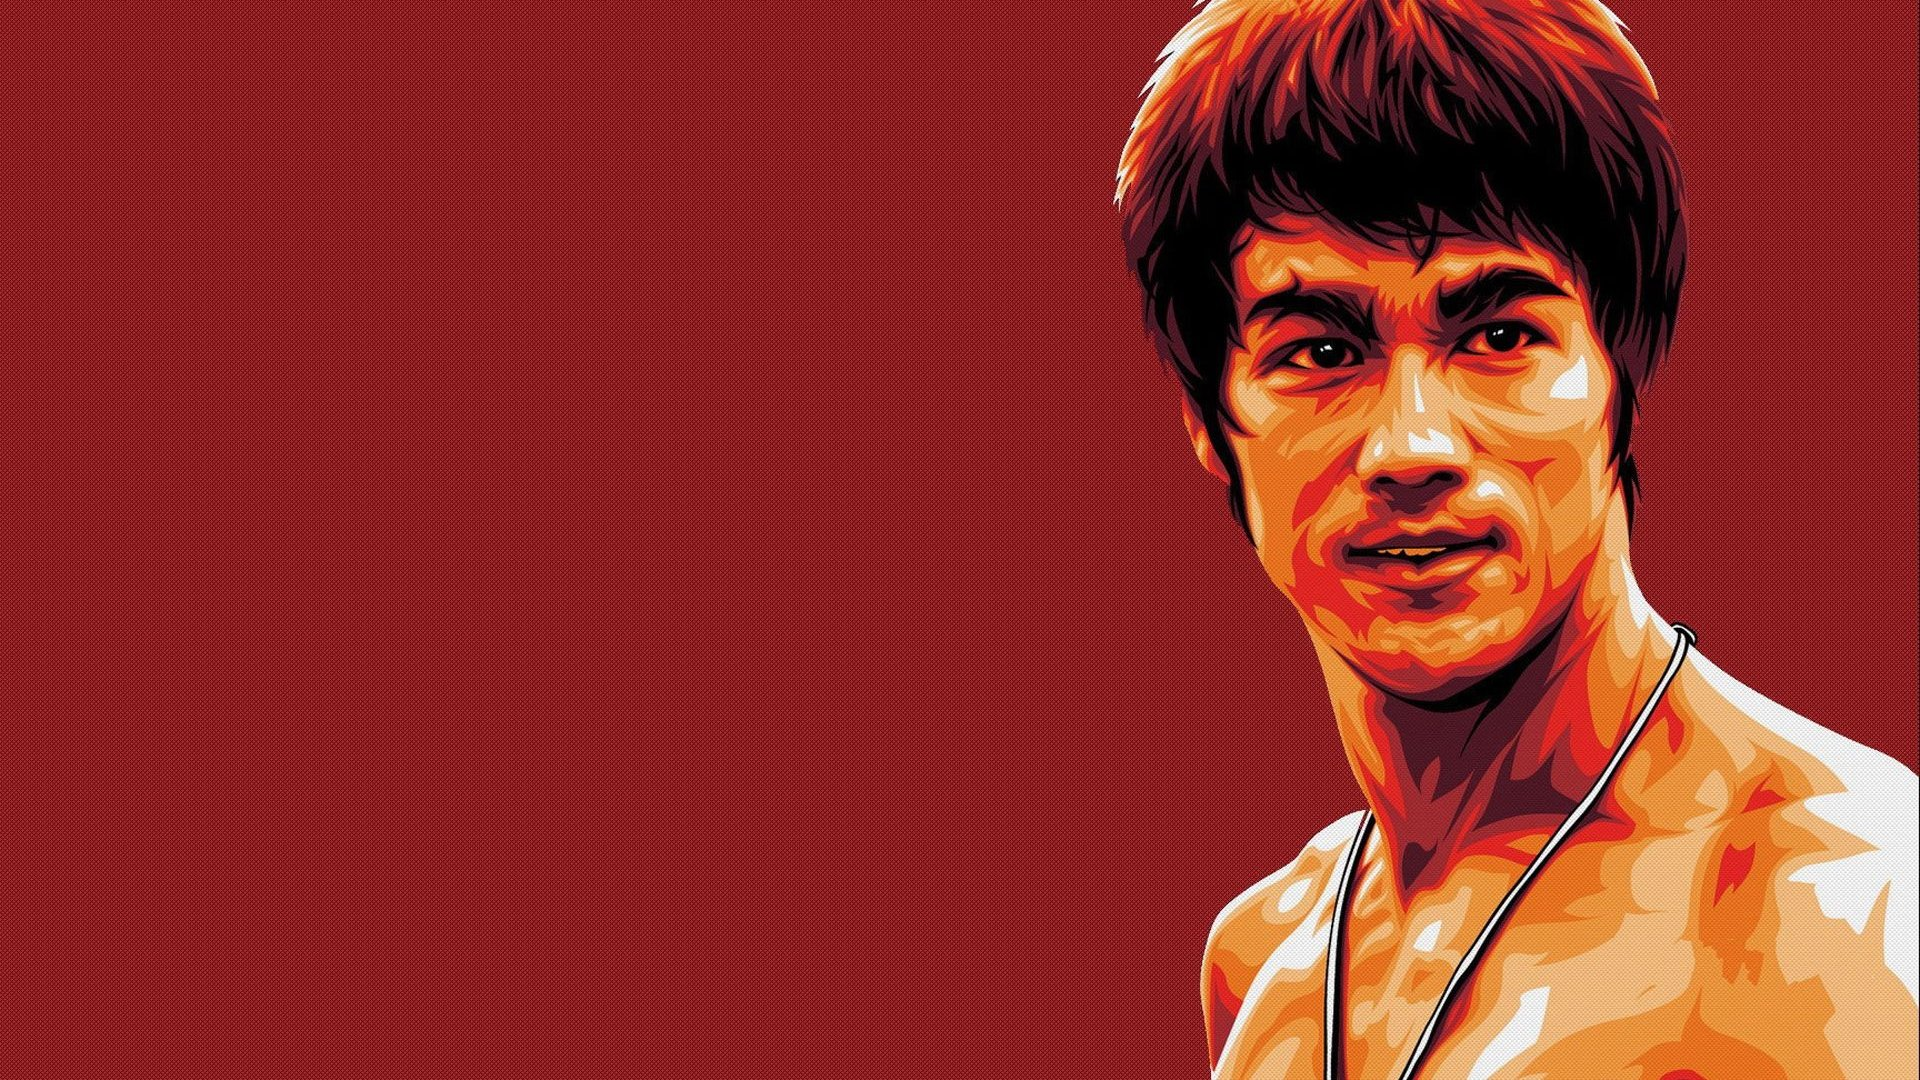 Bruce-Lee-Images-Photos-Pictures-Backgrounds-×-wallpaper-wpc5803064